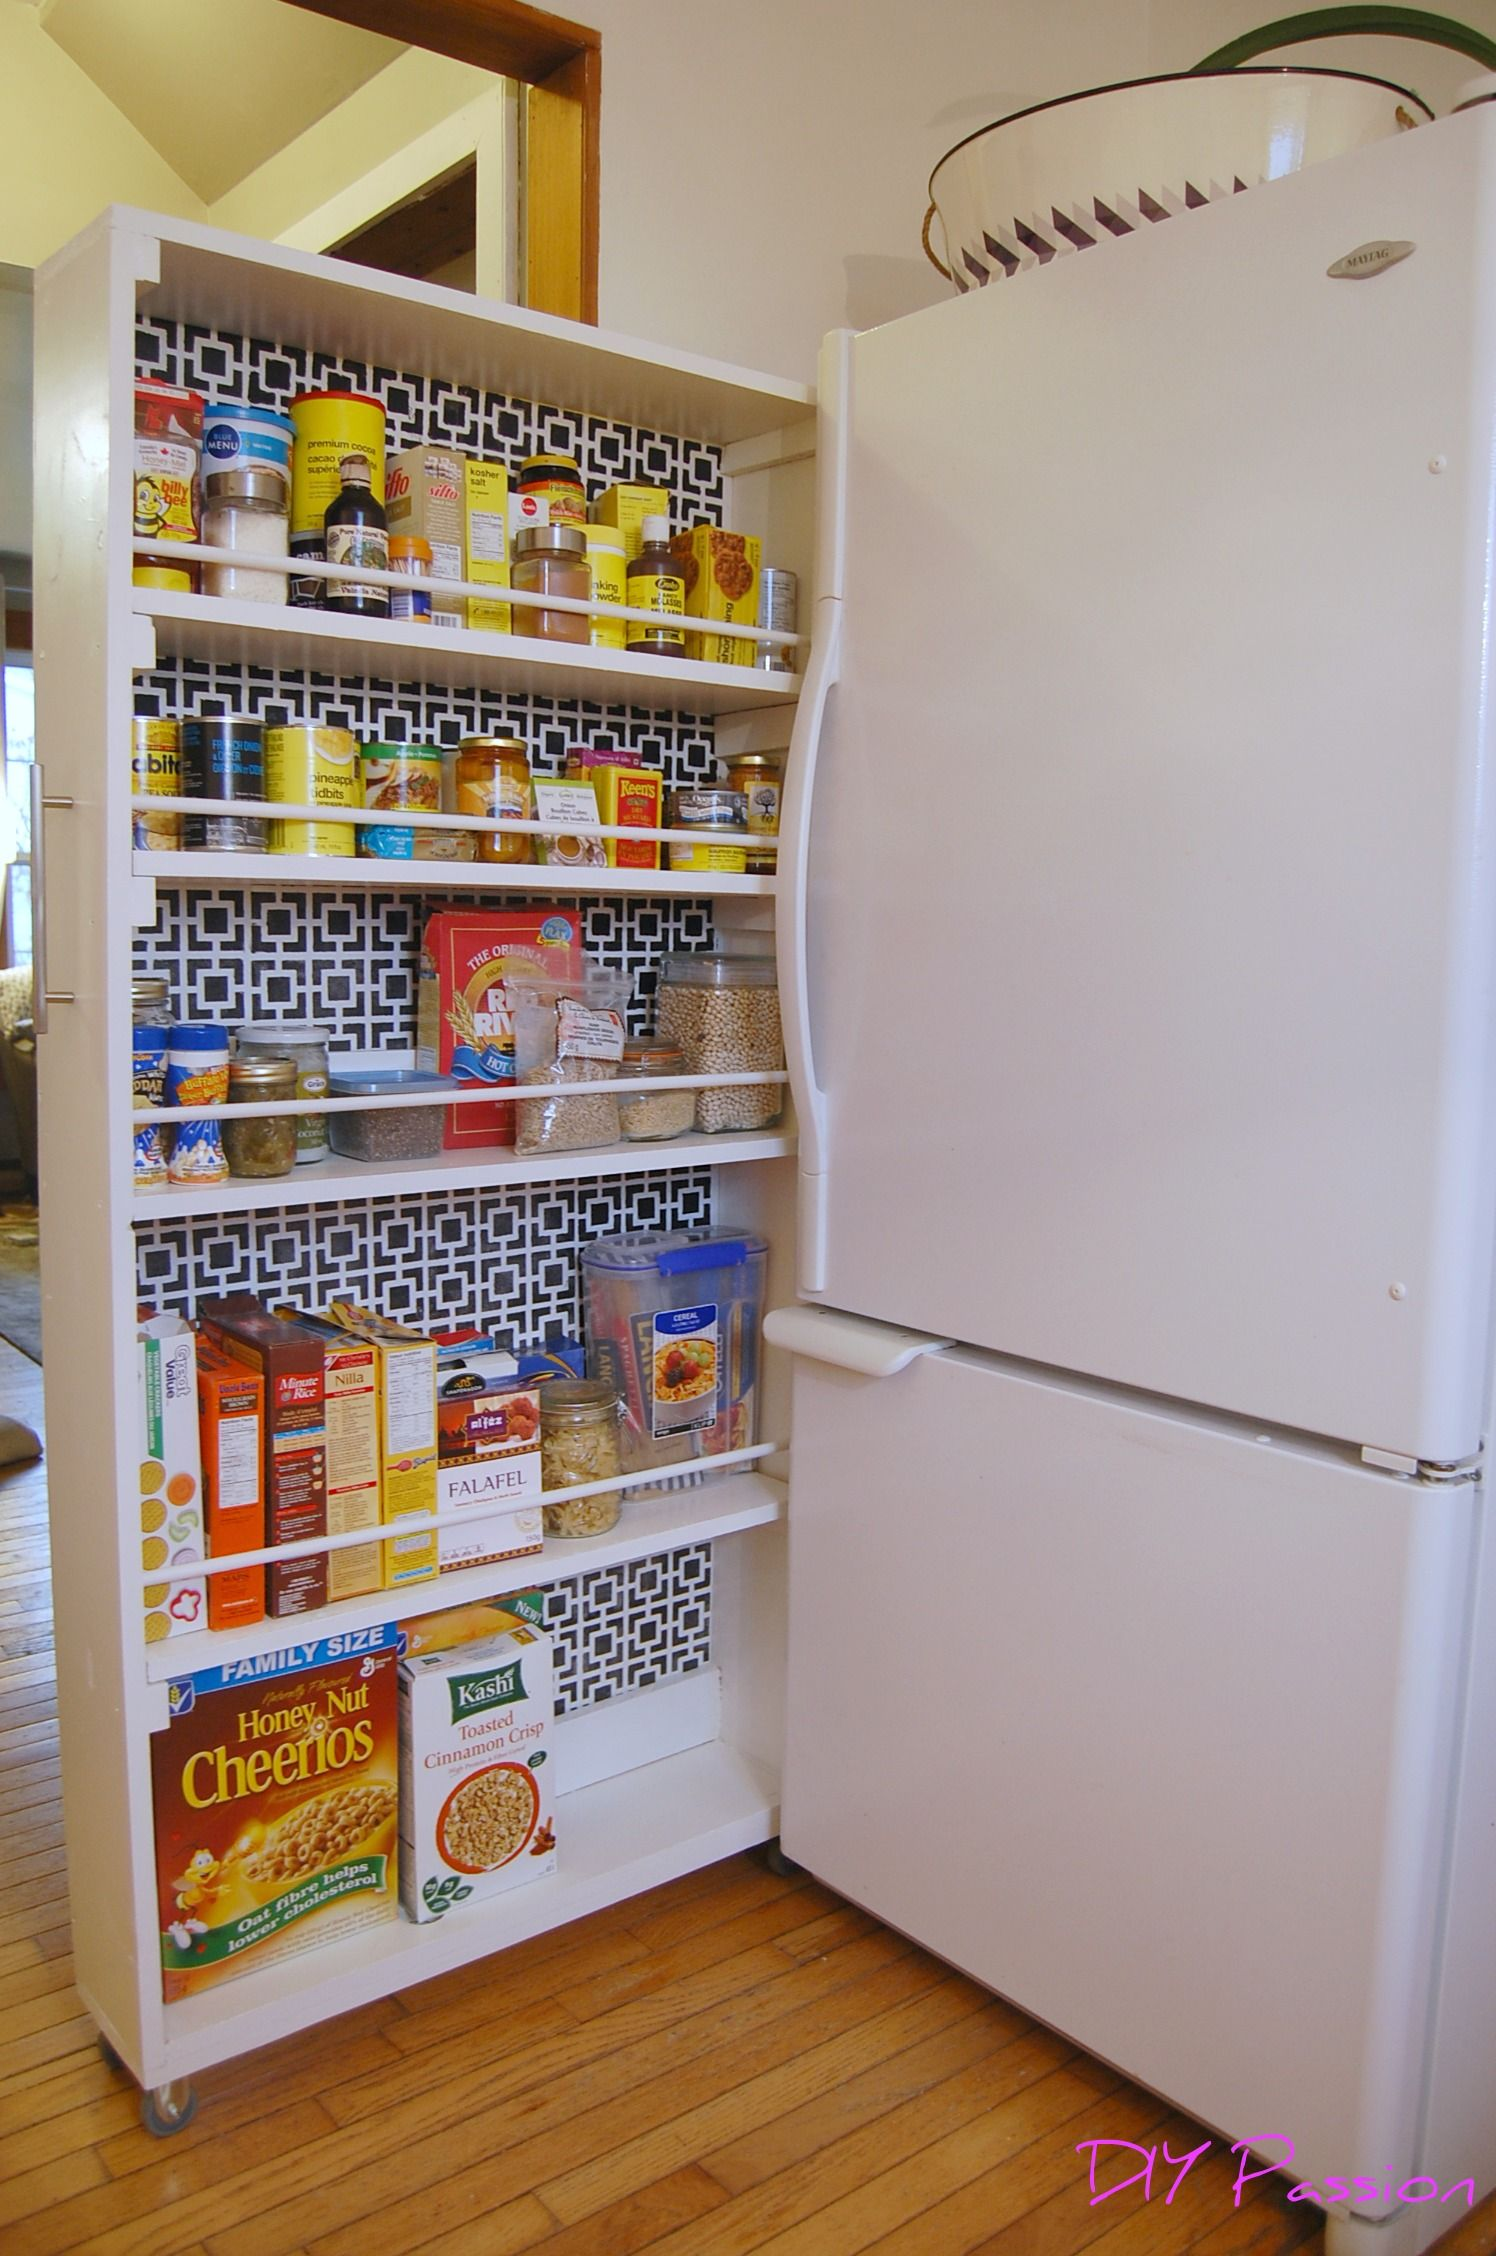 Diy Rolling Pantry Tutorial Home Pinterest Pantry Tutorials And Kitchens